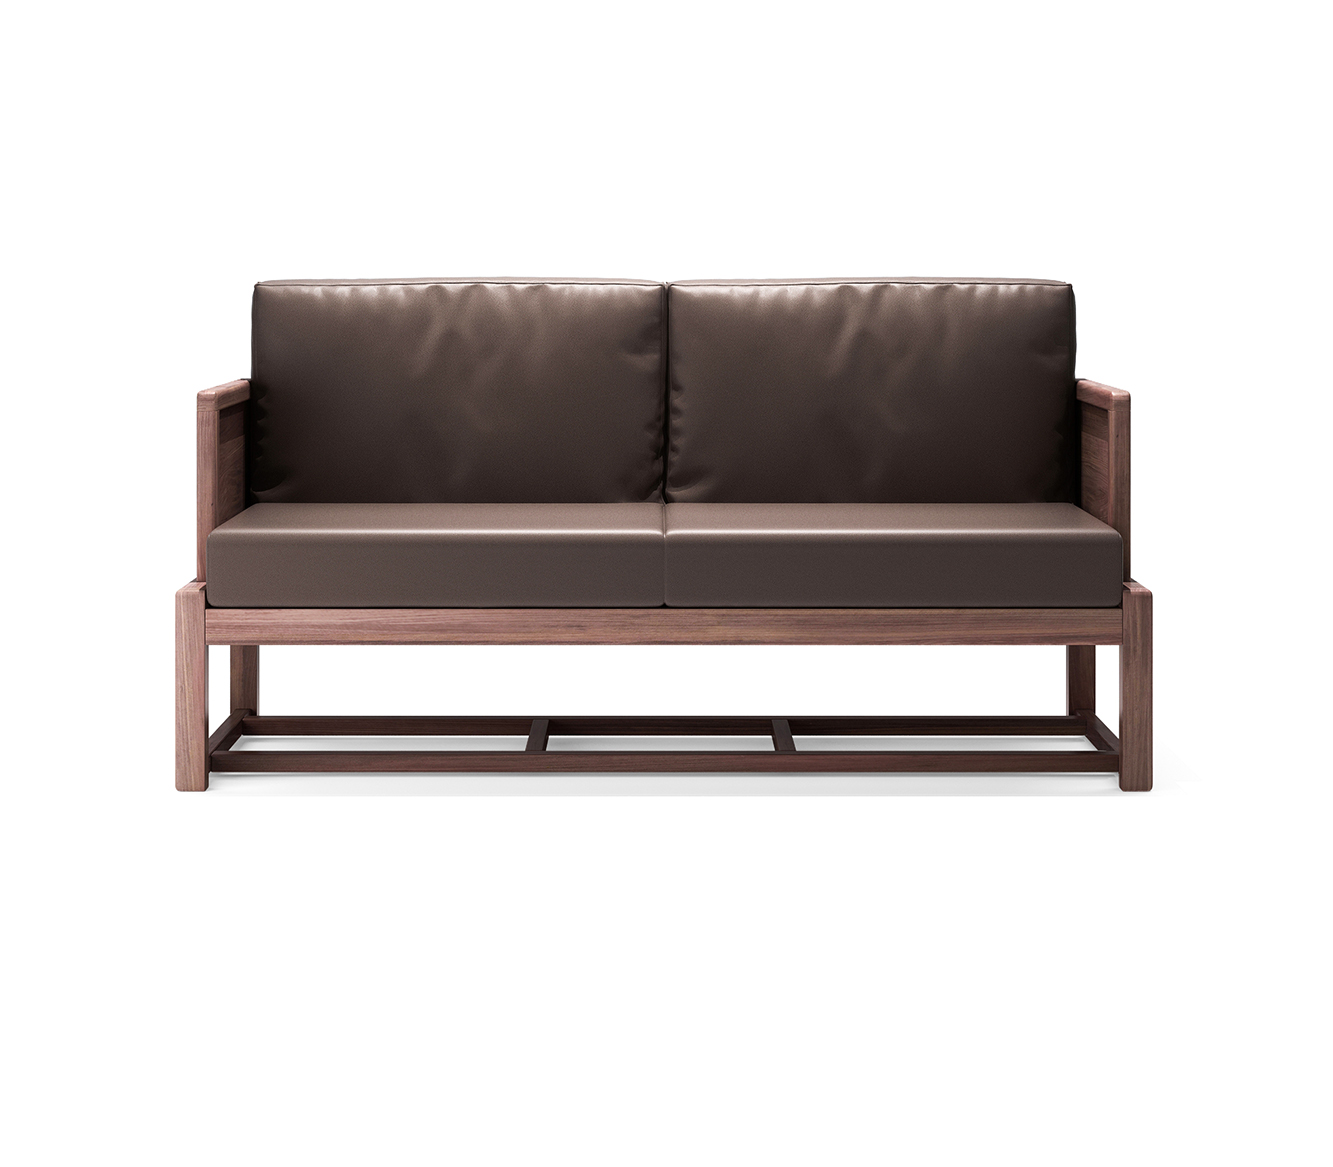 休闲沙发 Leisure Sofa  Y-60b